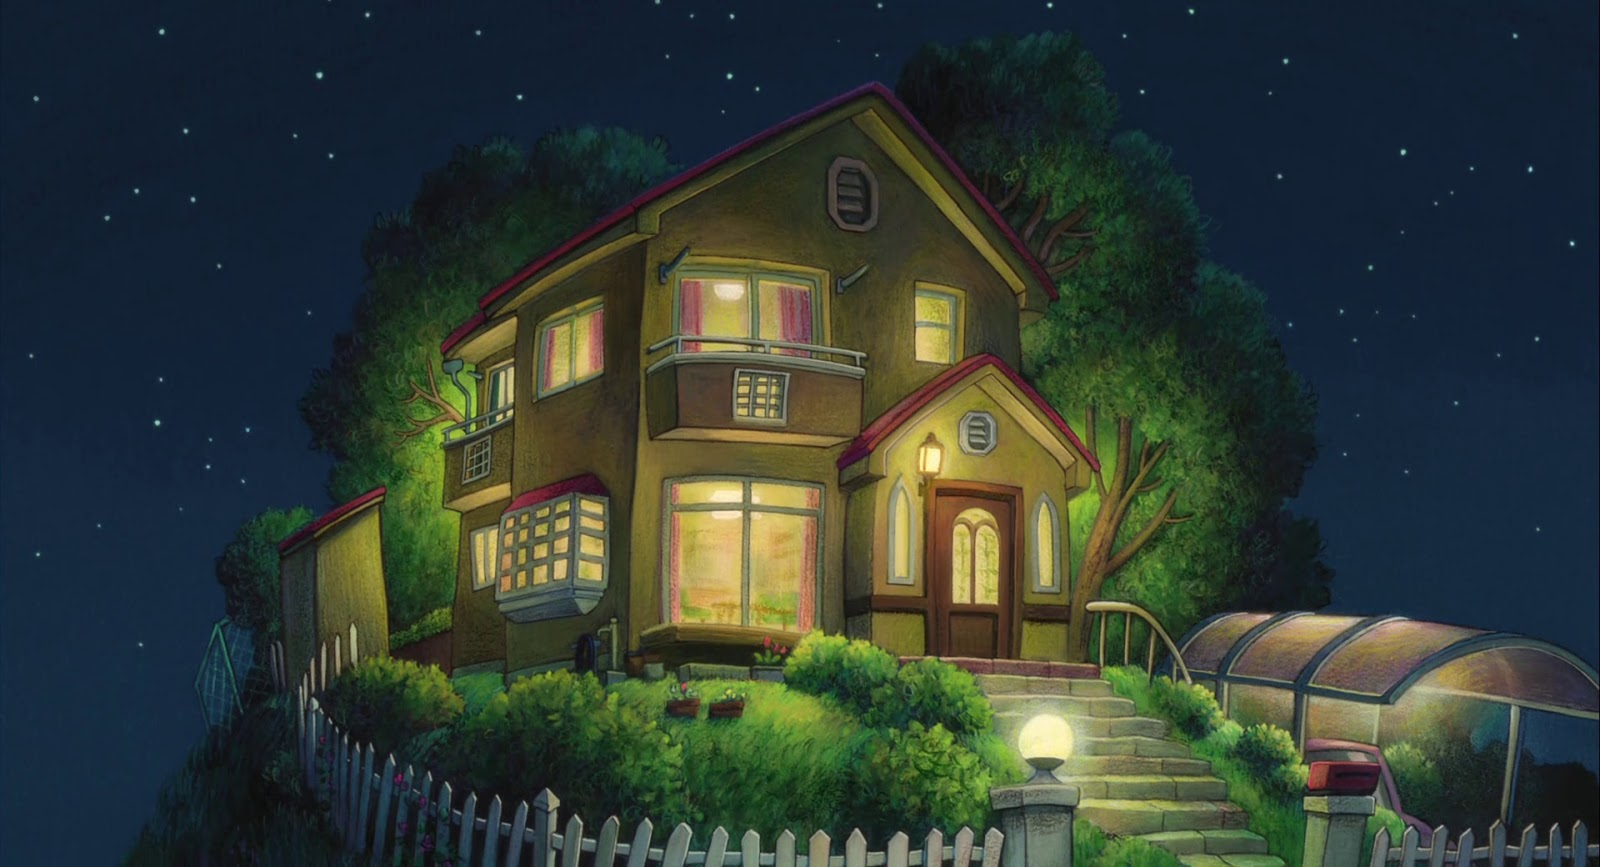 House from the movie ponyo ghibli anime background